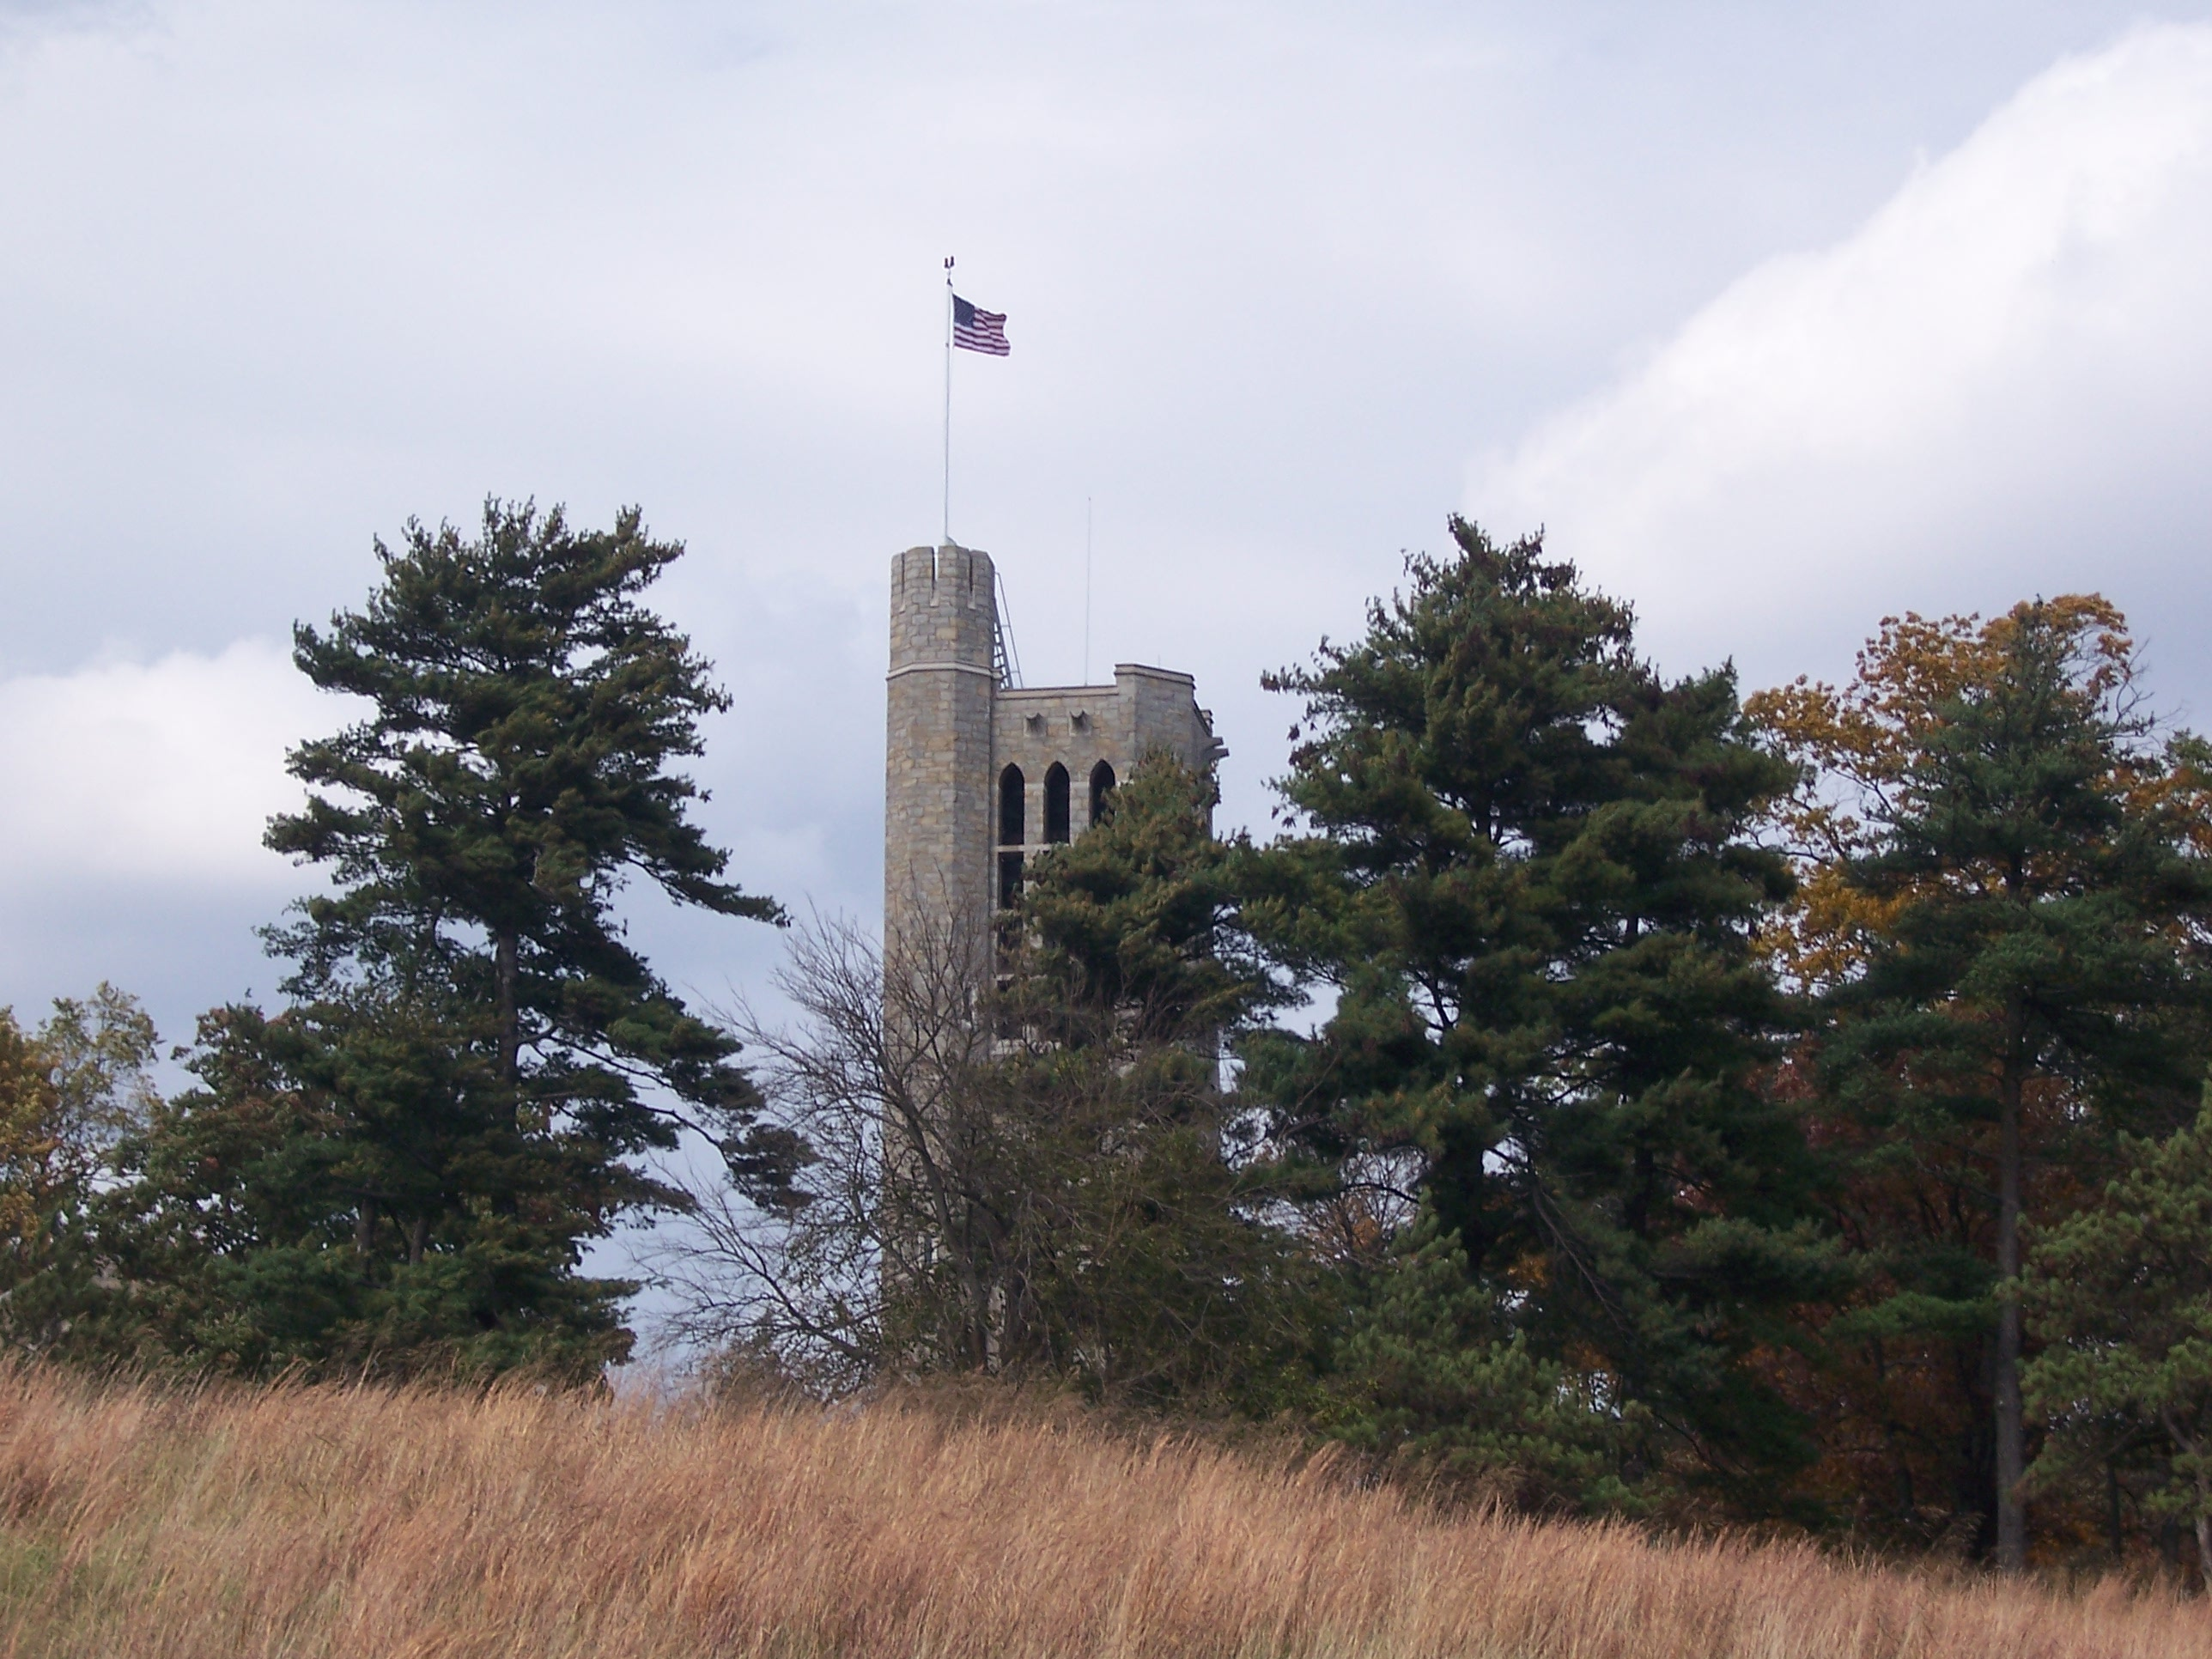 VALLEY FORGE CHAPEL, Bspo06, Castle, Chapel, Country, HQ Photo